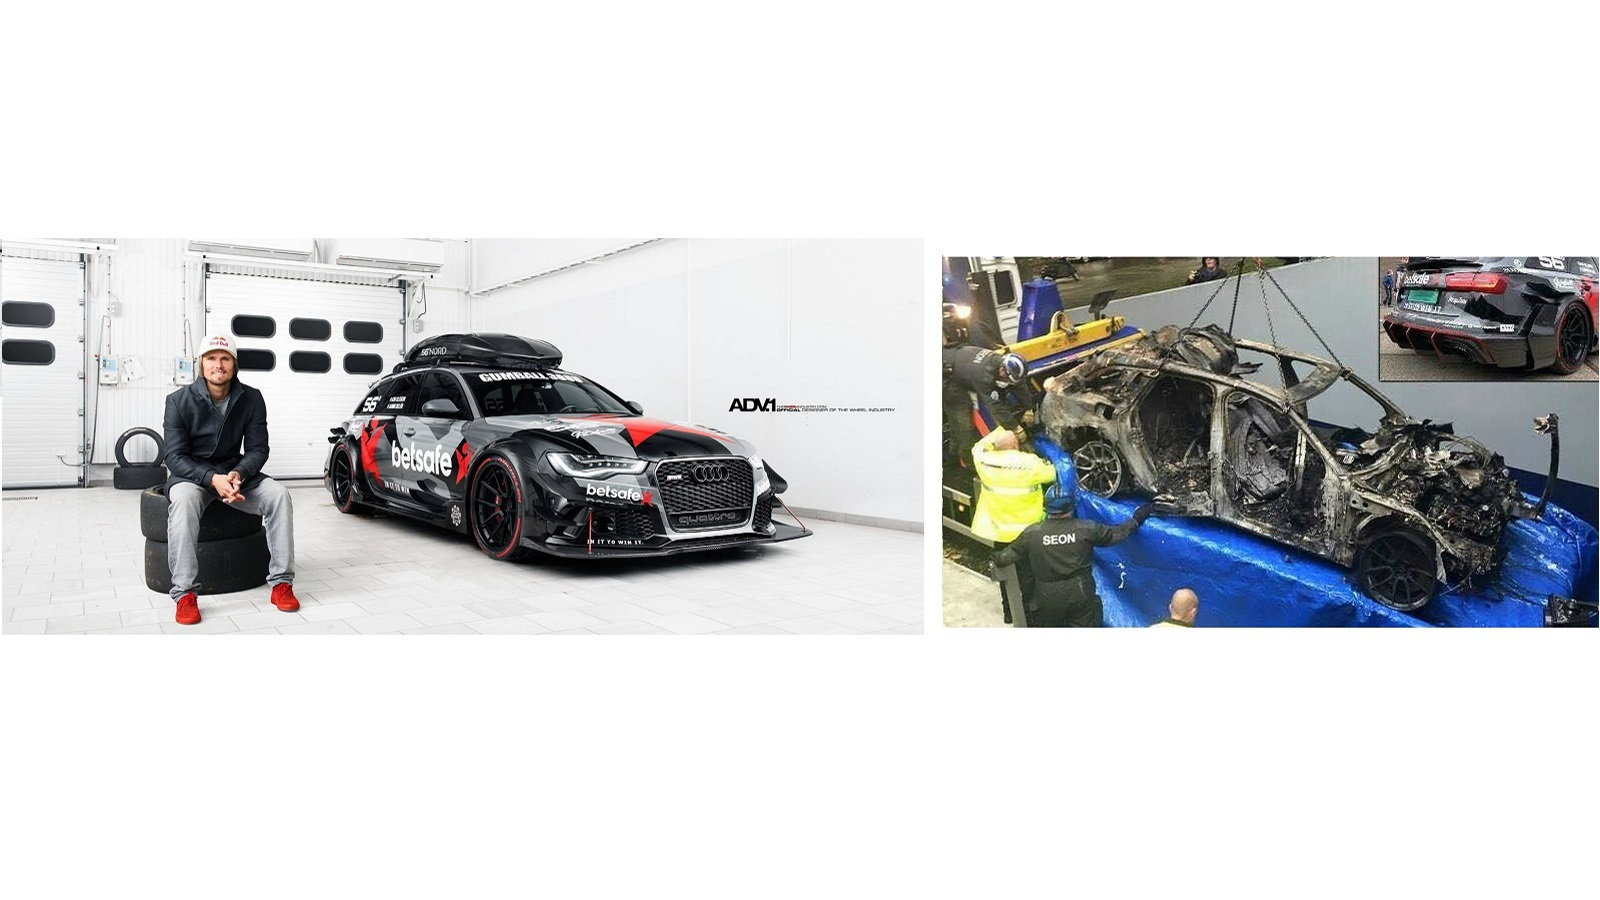 Skier Jon Olsson's RS6 Wagon Replaces What Was Stolen and Burned